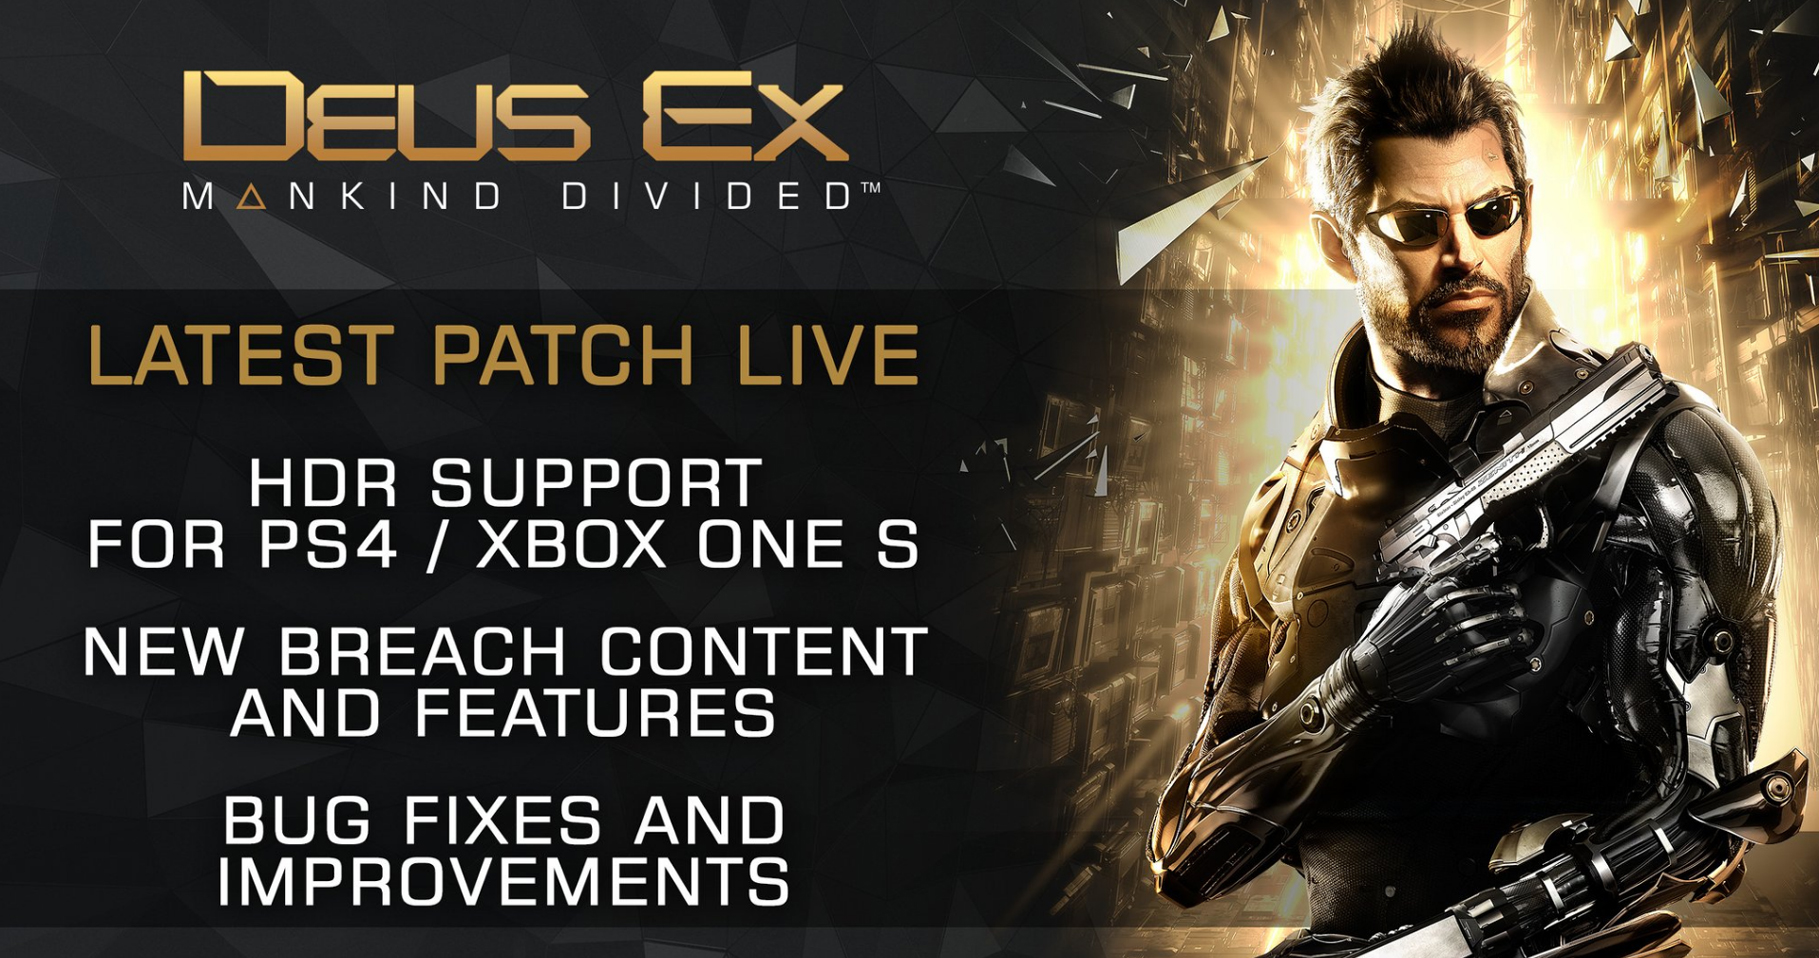 Deus Ex Mankind Divided HDR Patch PS4 Xbox One S